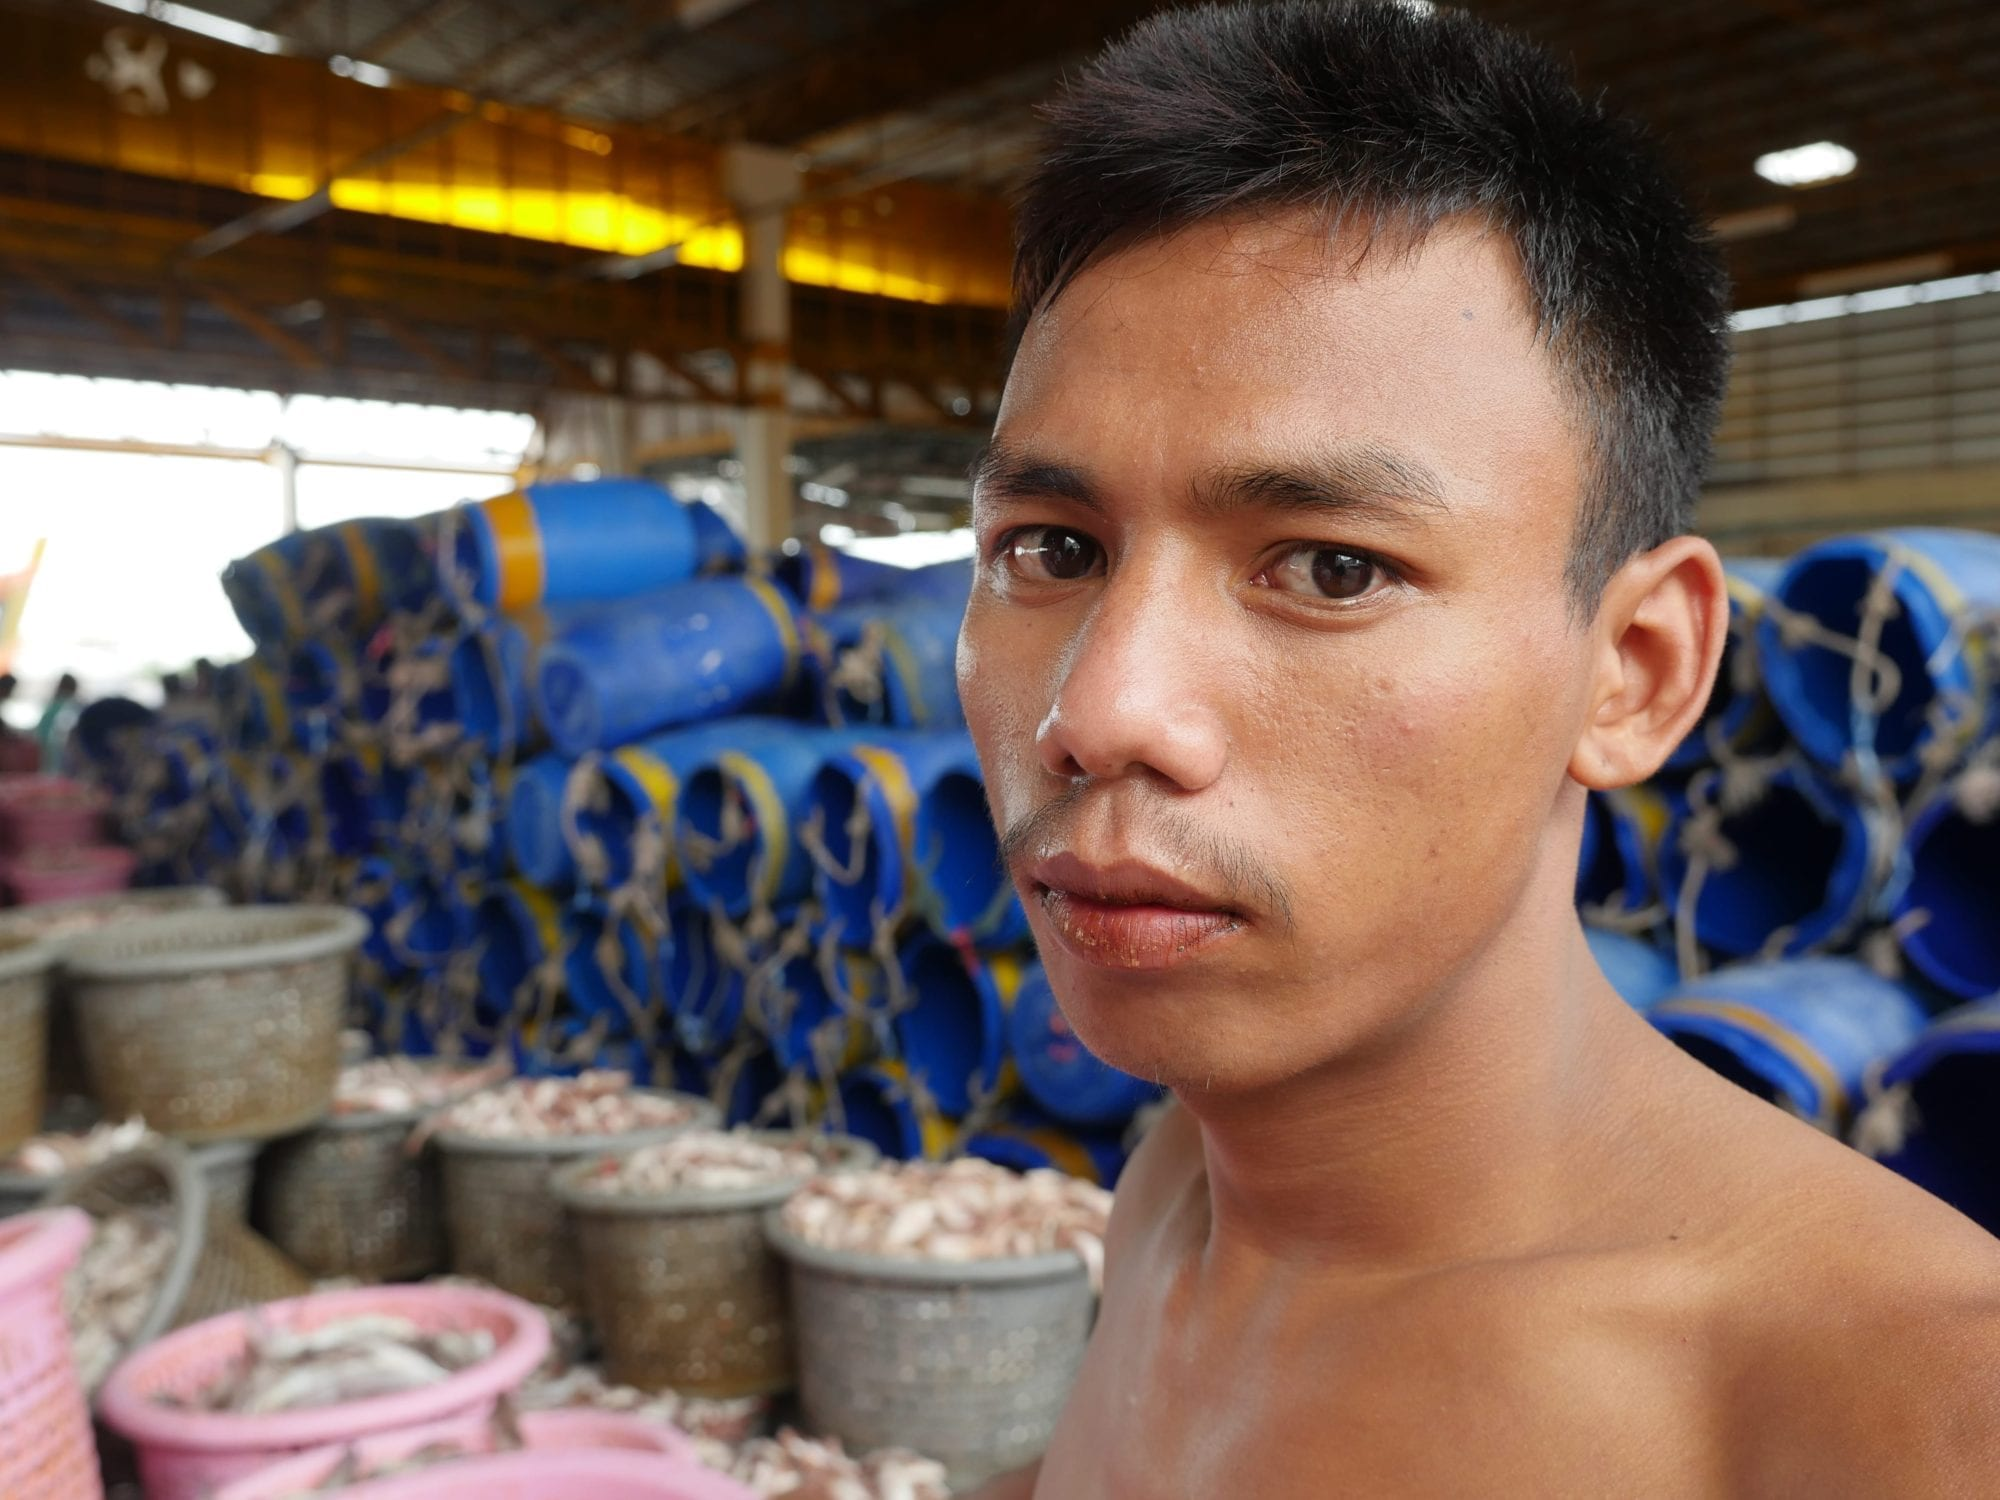 In Thailand, Burmese Migrant Workers Toil Without Rights